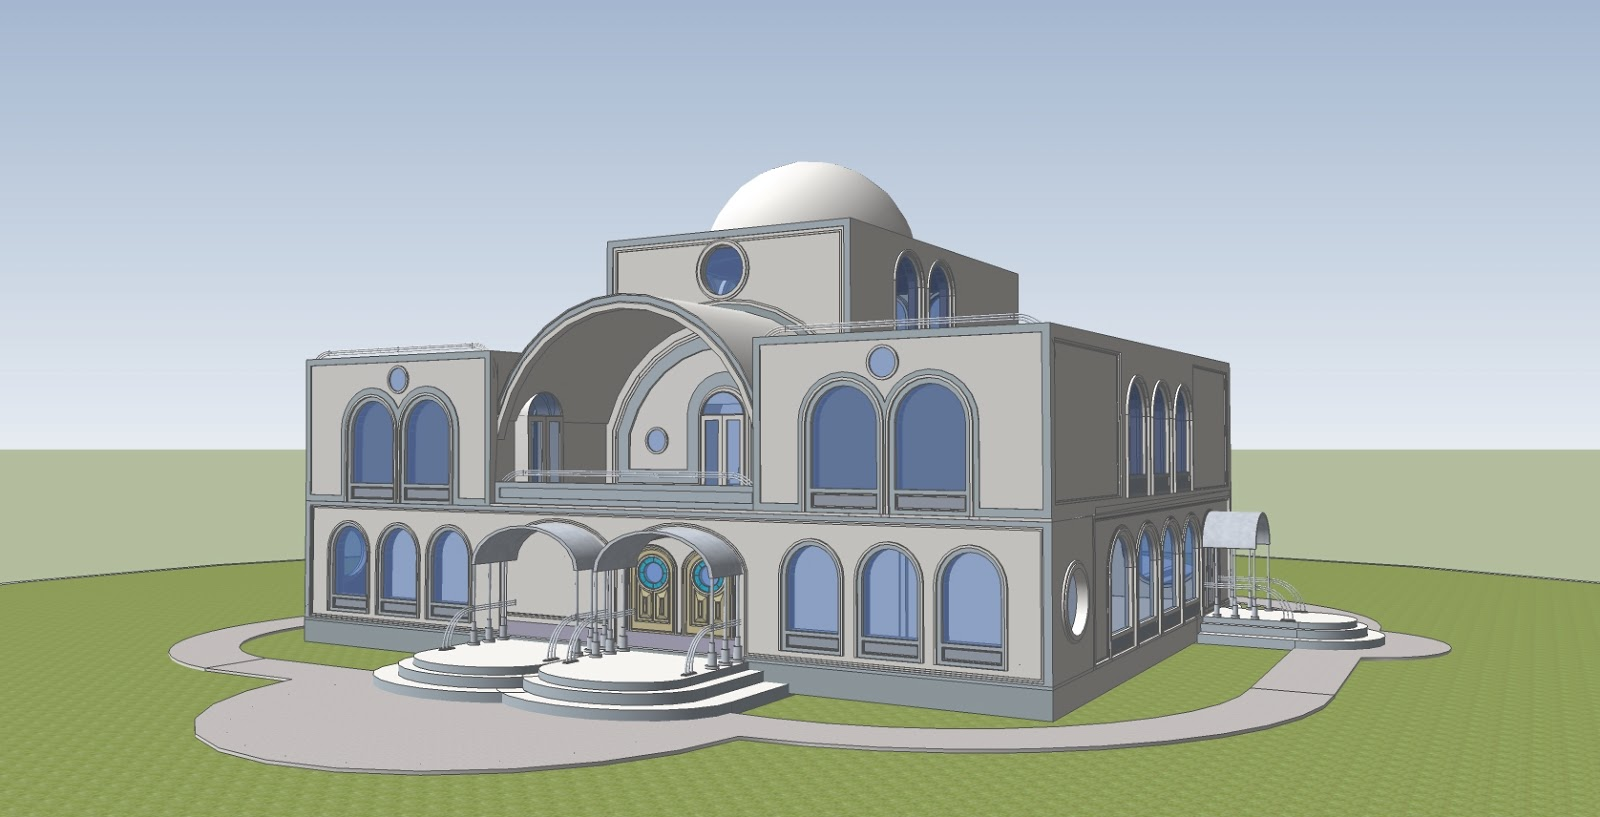 Sketchup by dawn april 2013 for Modern house sketchup